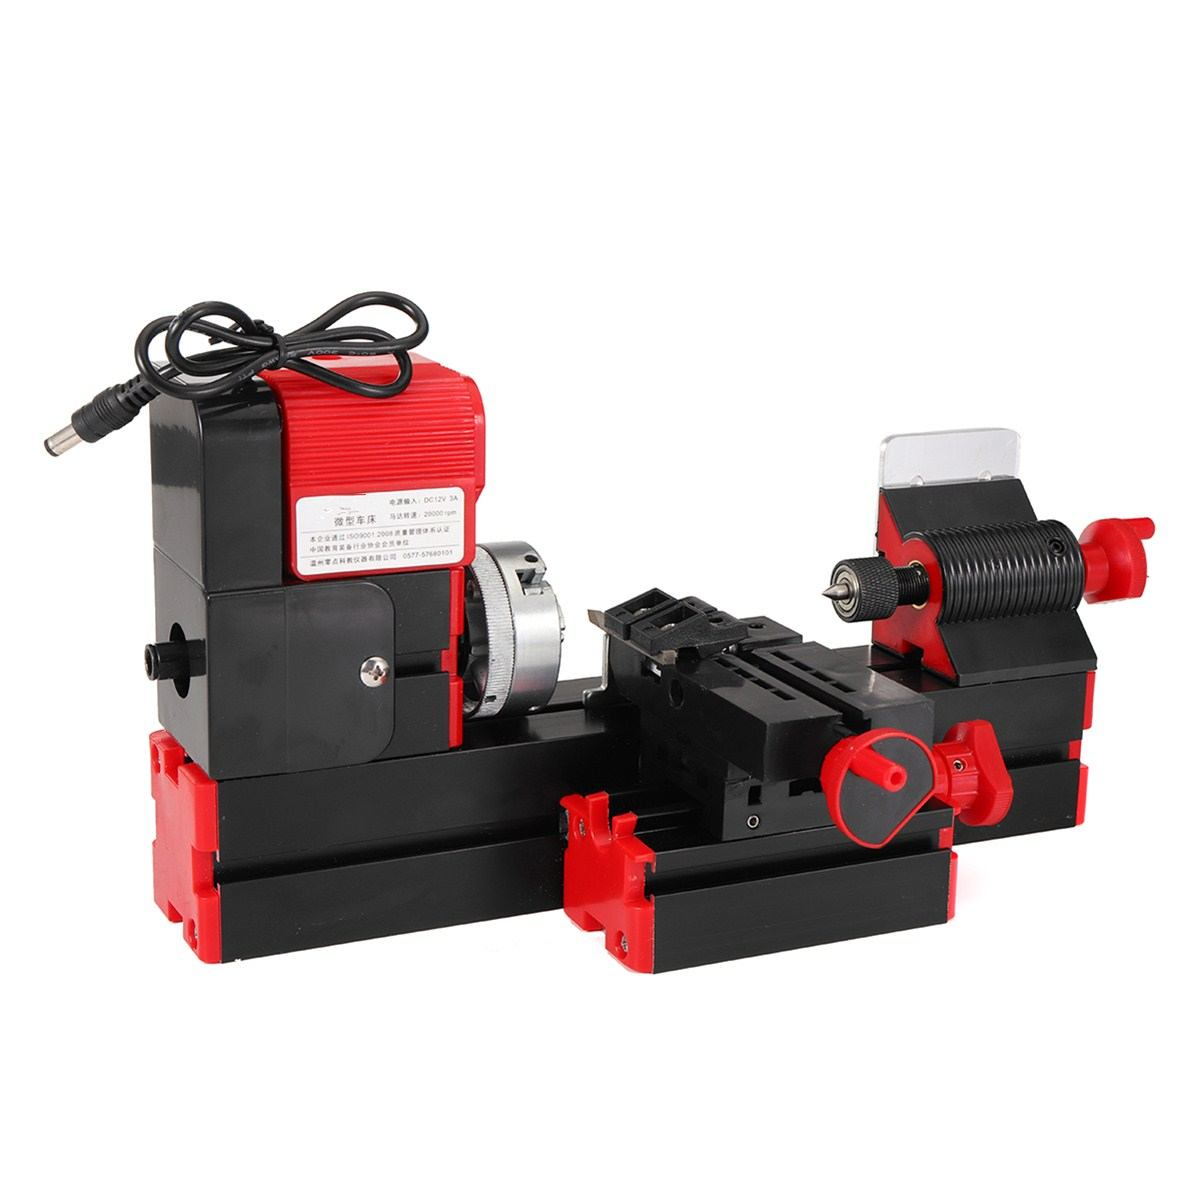 DC12V 3A 36W Mini Lathe Milling Machine Torn Drill Wood Engraving Power Tool Didactical DIY Lathes Woodworking Metal Chuck Lathe